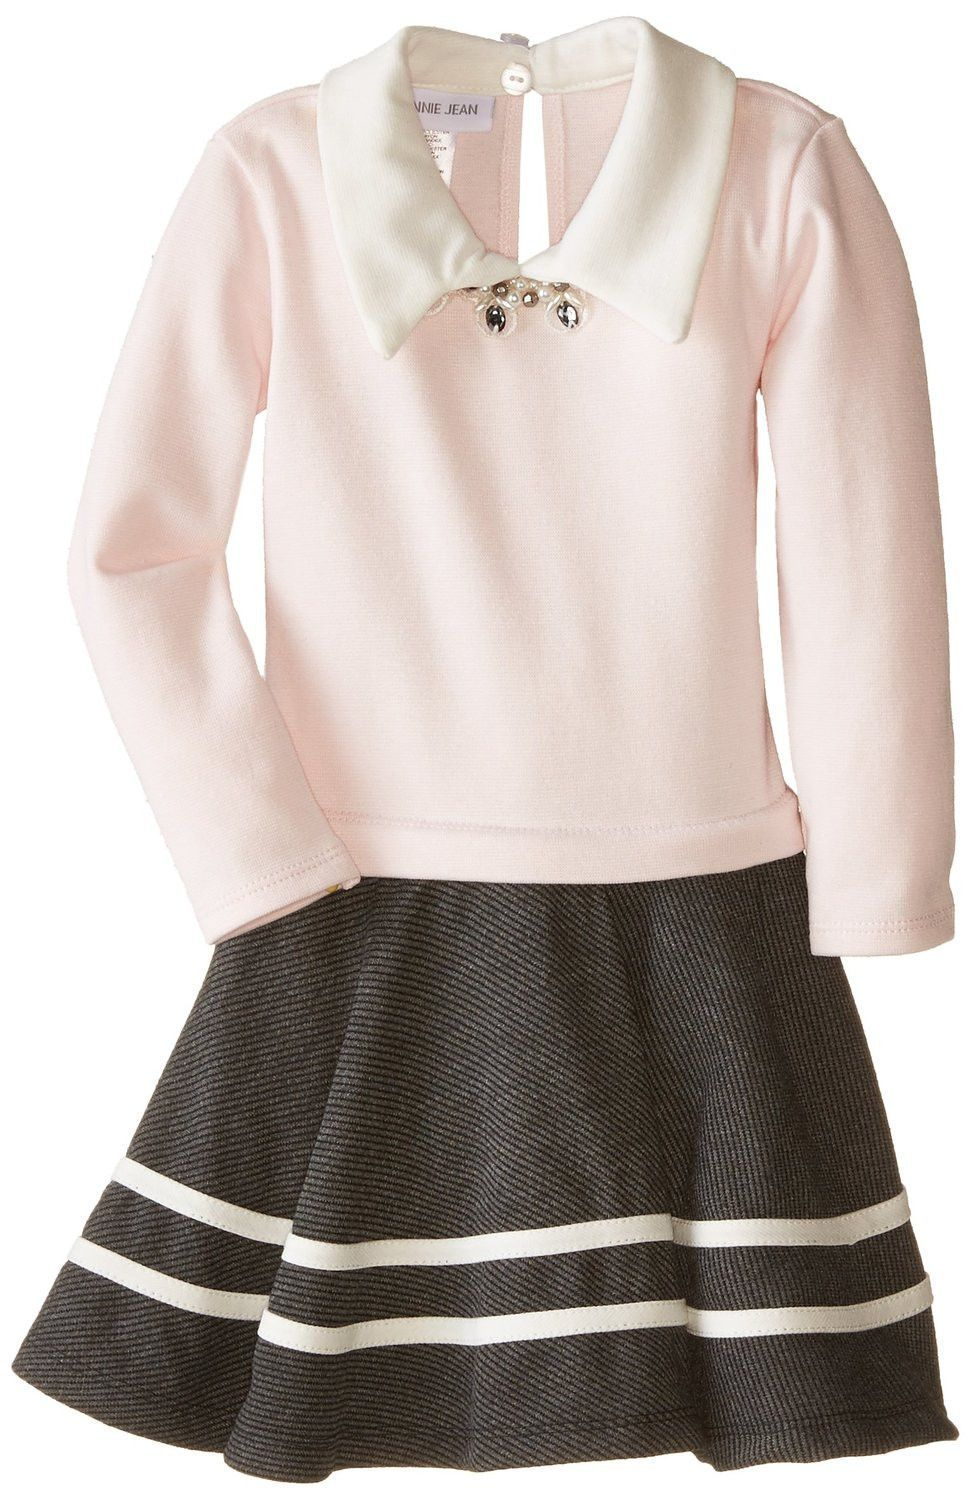 Pink sweater dress outfit  Bonnie Jean Little Girls Sweater Dress  Ribbed Knit to Twill Shirt